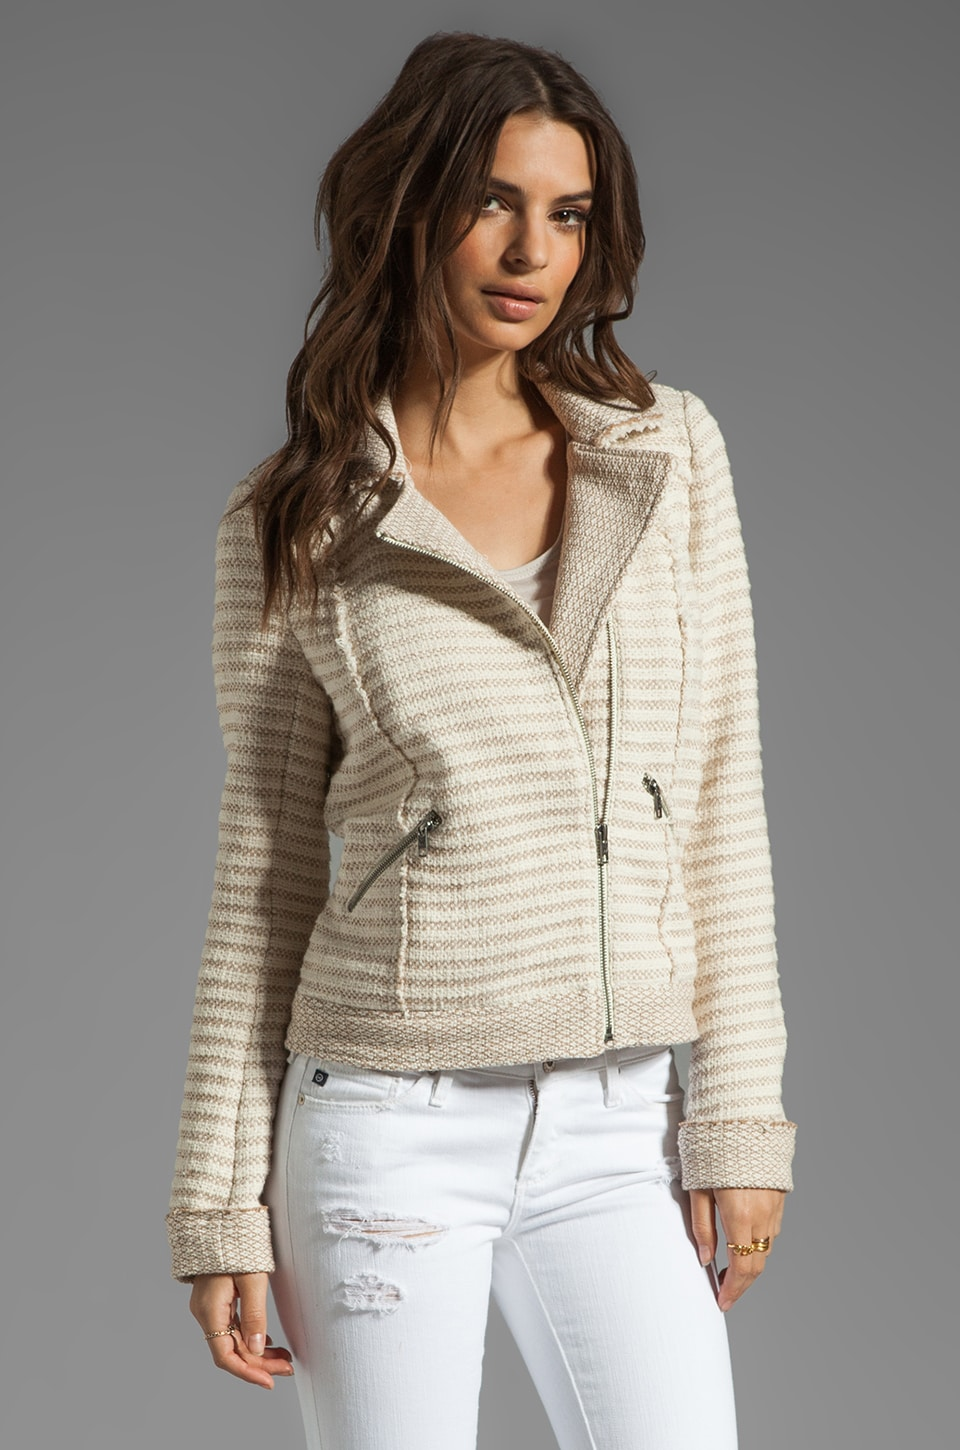 Ella Moss Salinas Stripe Jacket in Linen/Cream